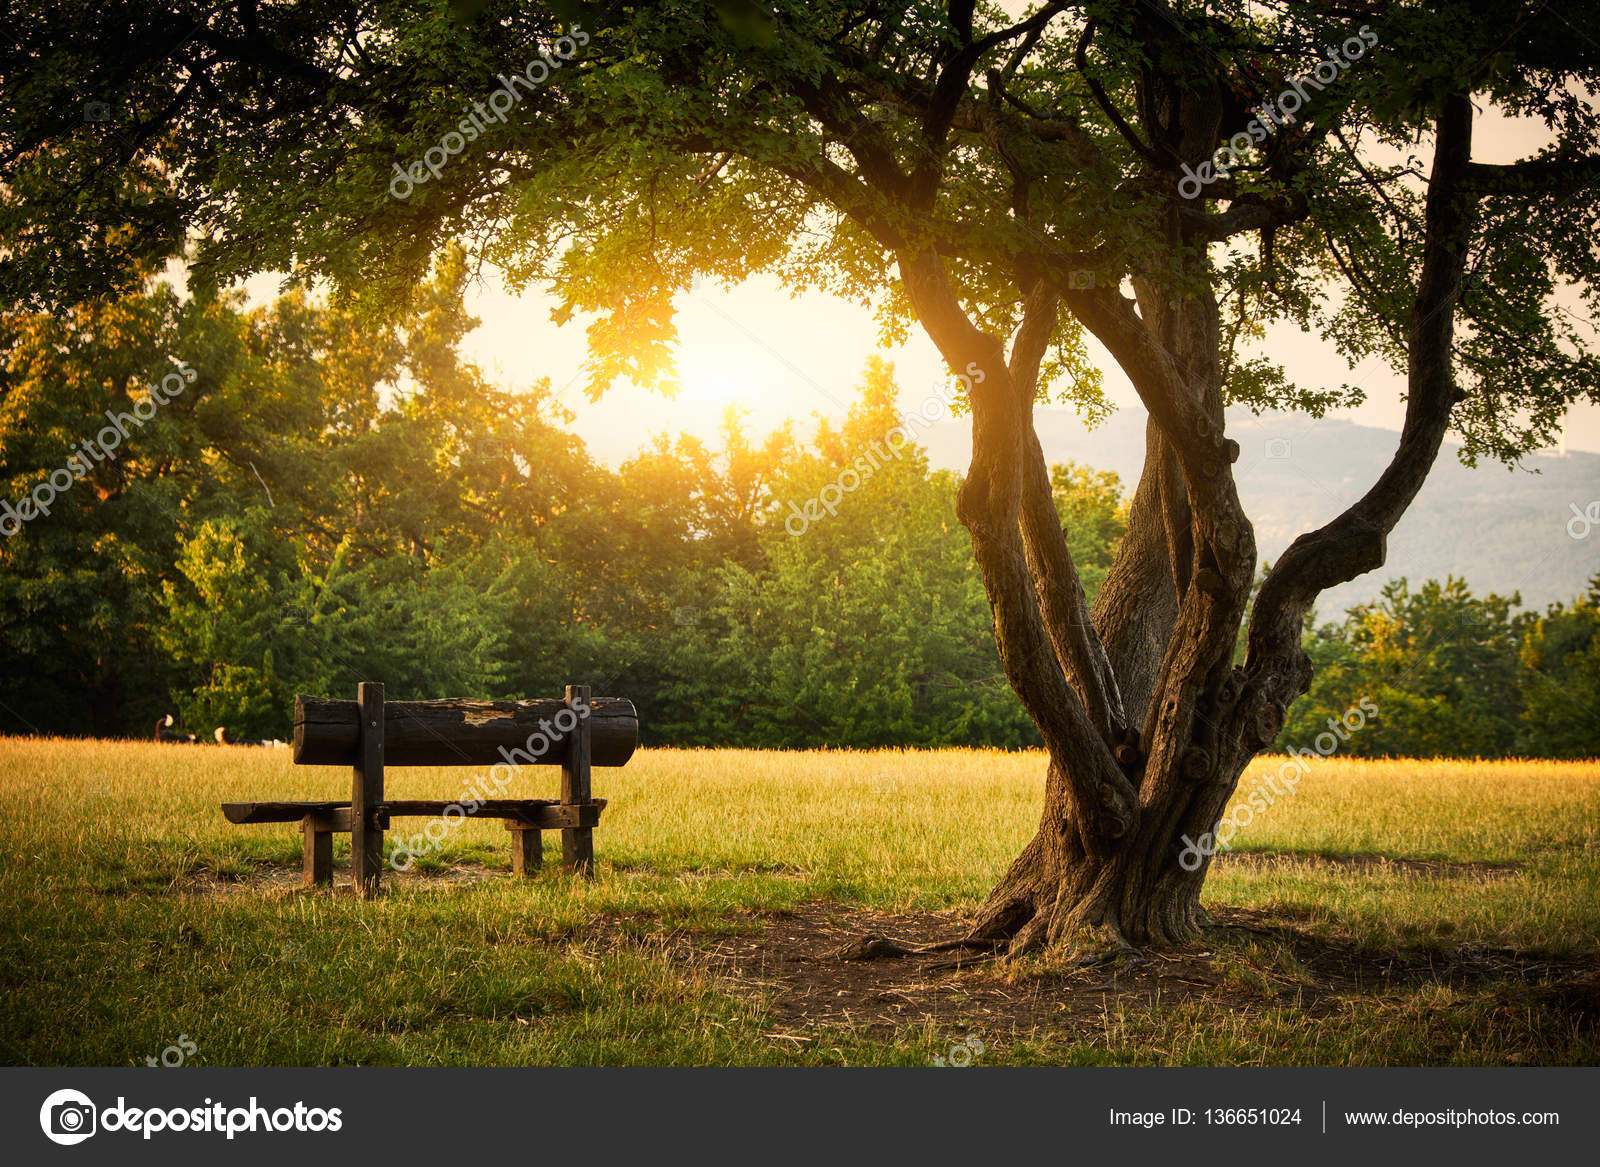 Bench In A Park Stock Photo C Linux1987 136651024